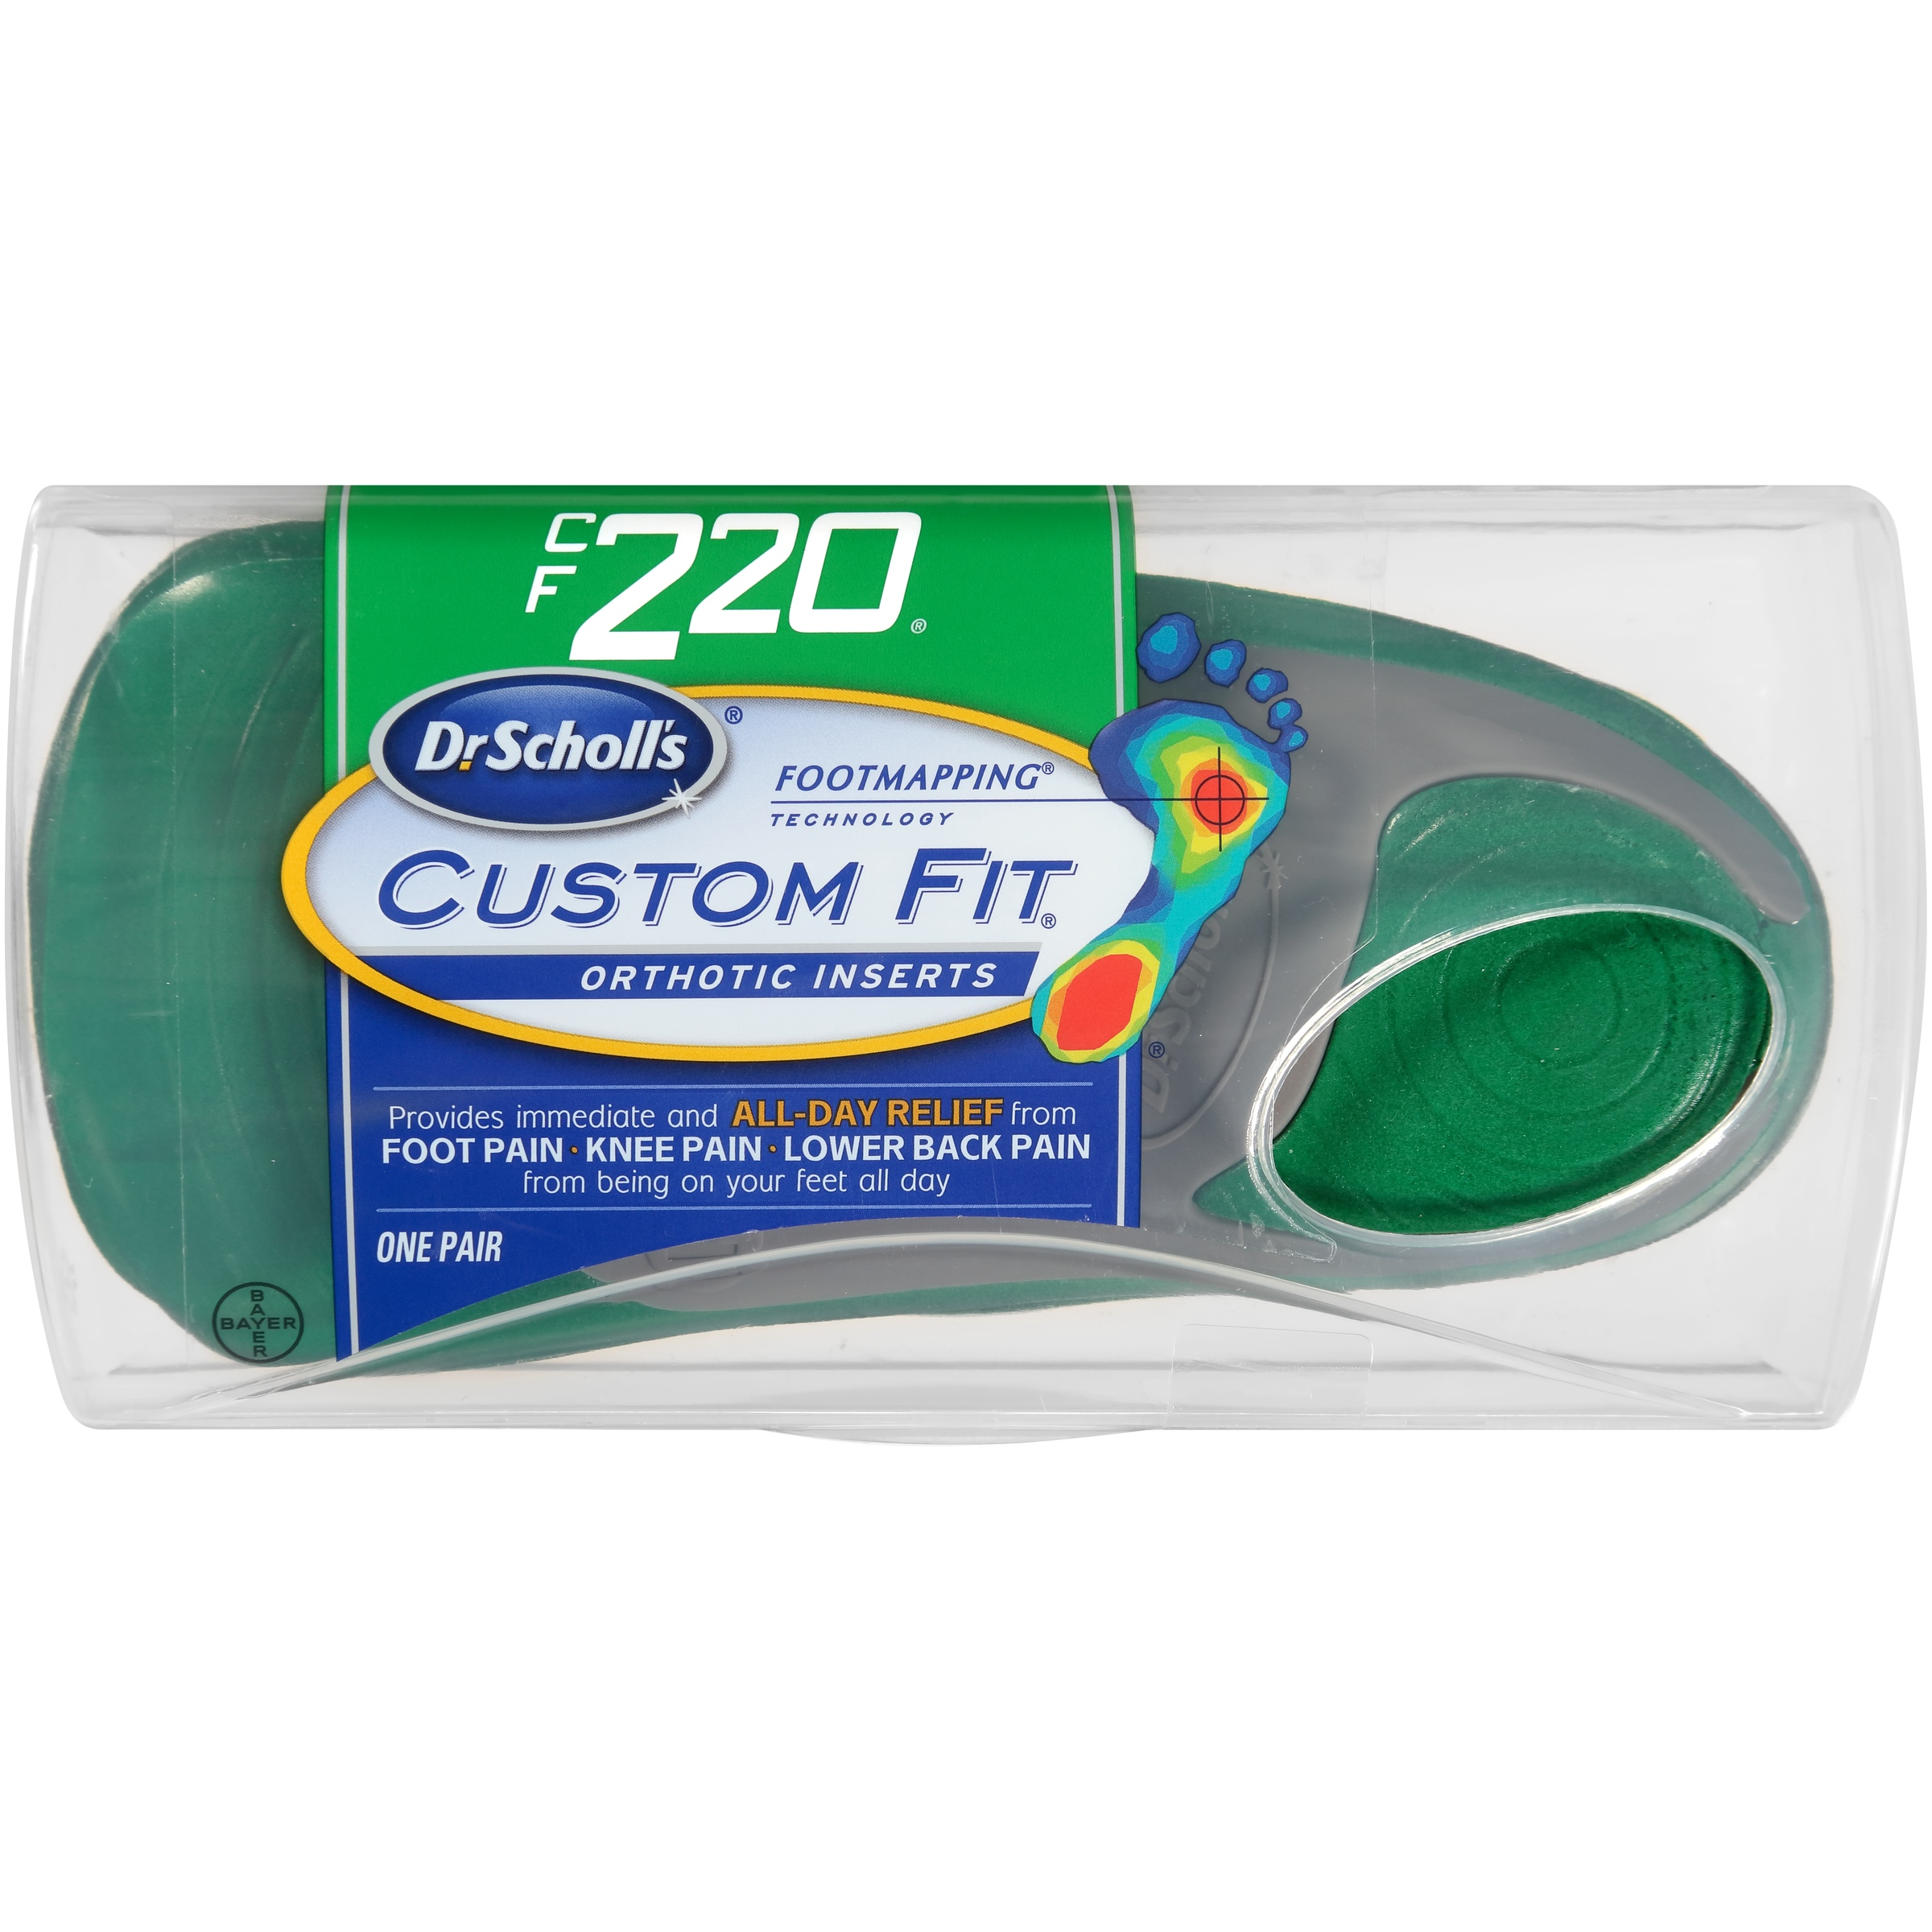 Dr. Scholl's® Custom Fit® Orthotic Inserts CF220, 1 Pair